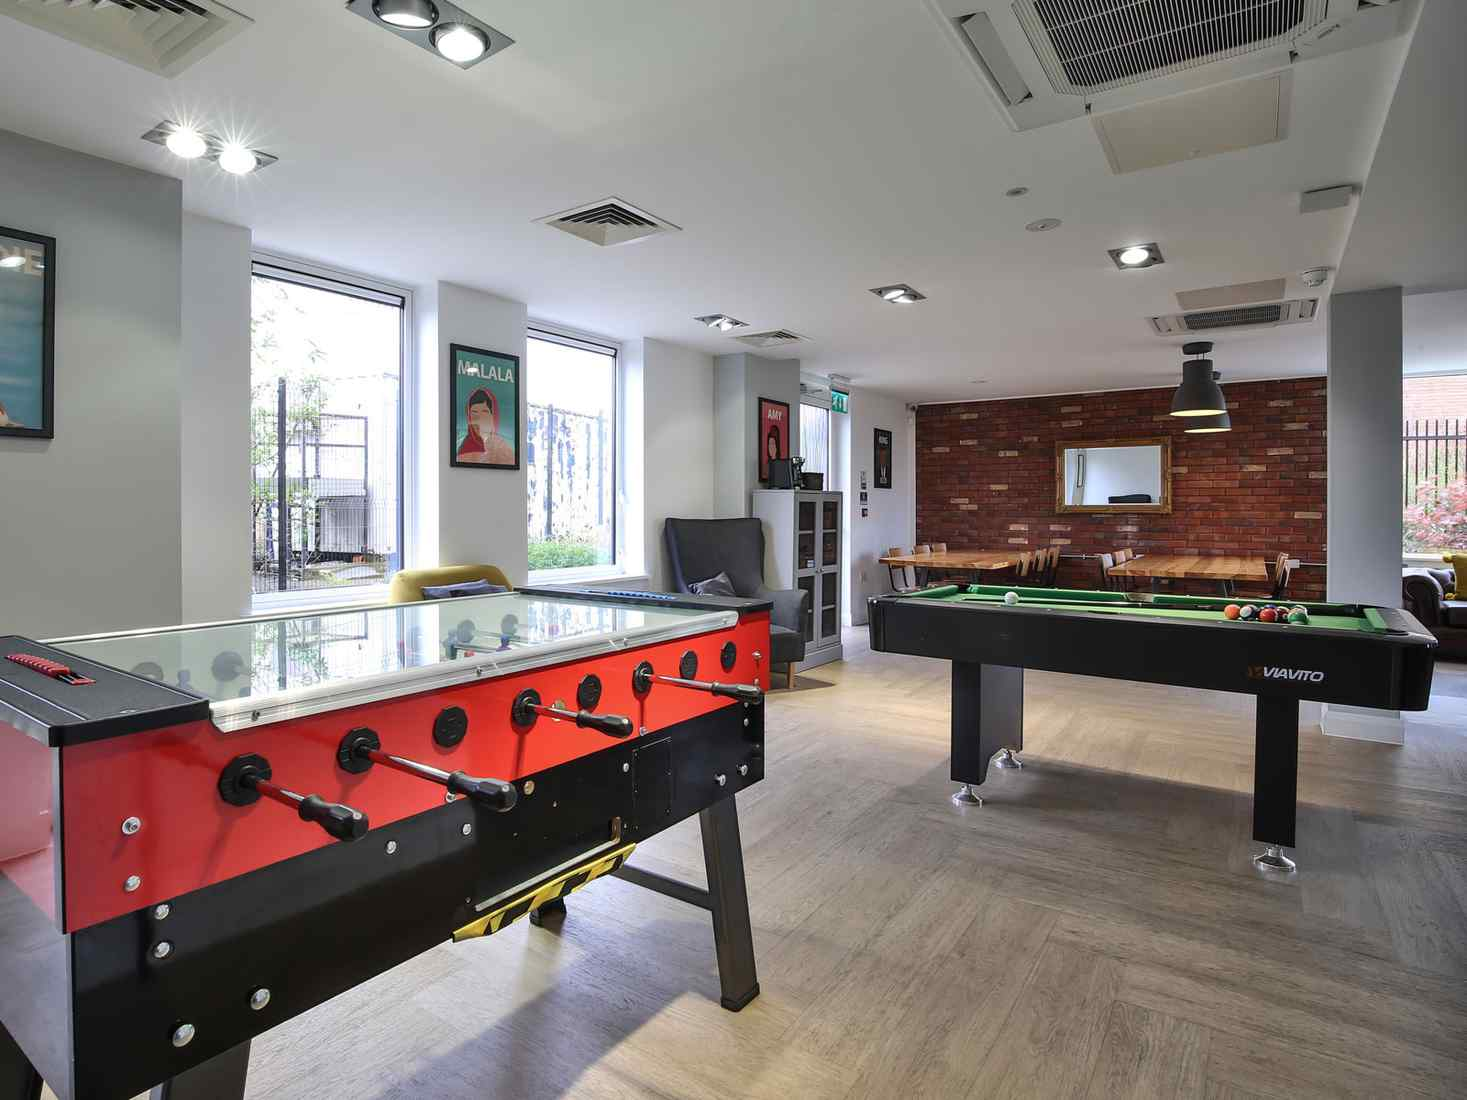 Social space at the Brickworks, with a table football table and a pool table.